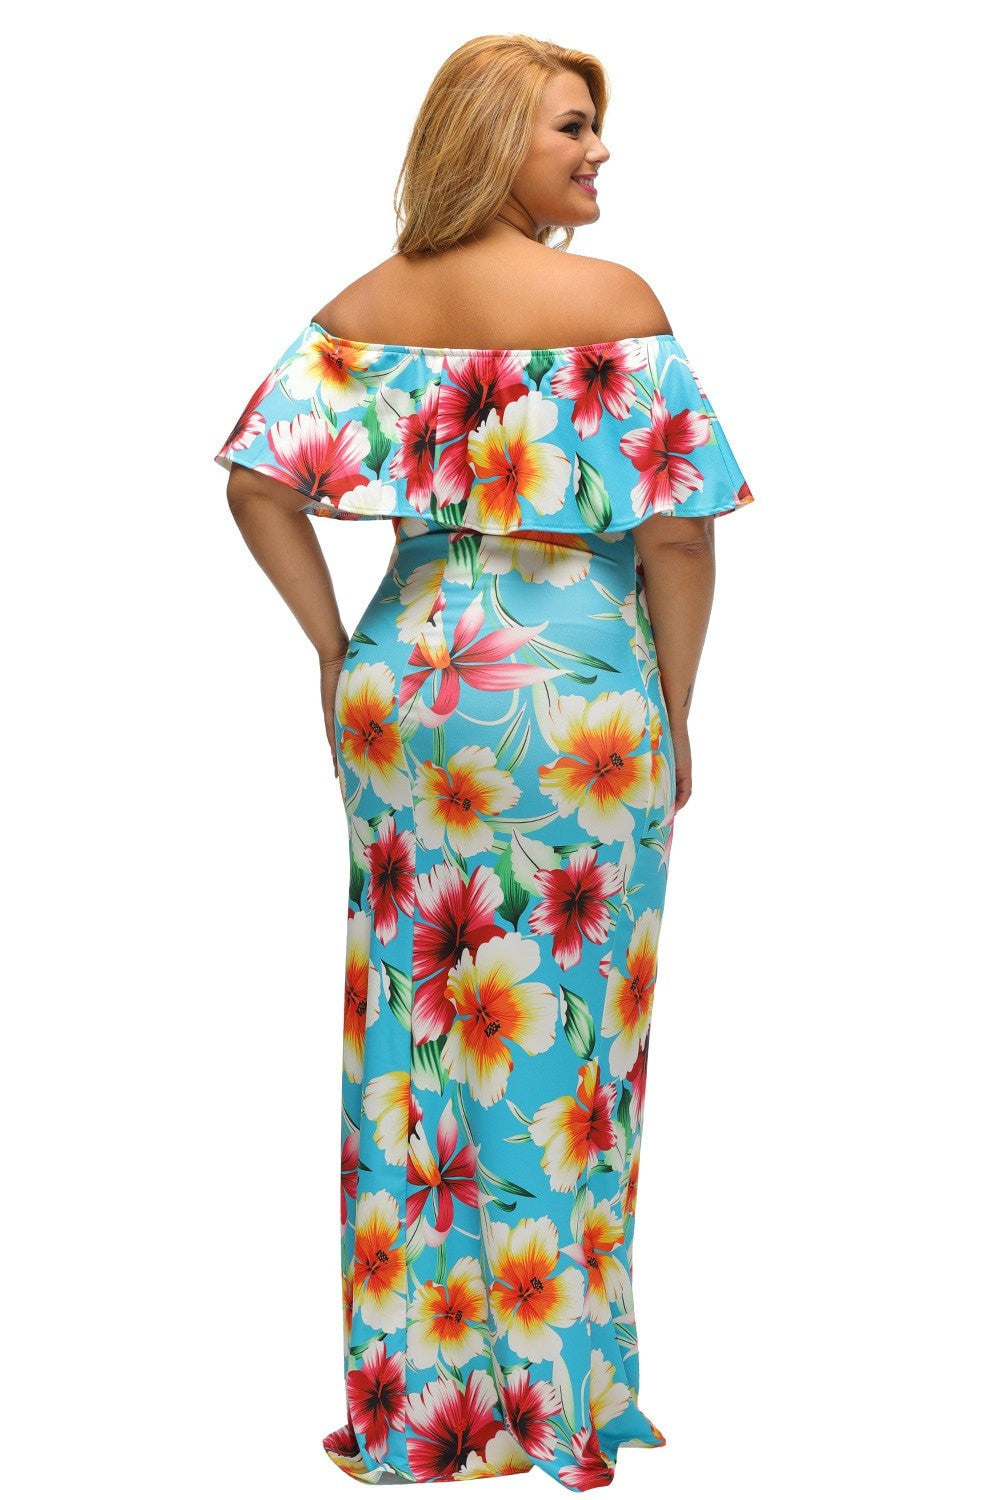 Faith Flowing Floral Maxi Dress Plus XL (1X) - Budget Babe Couture